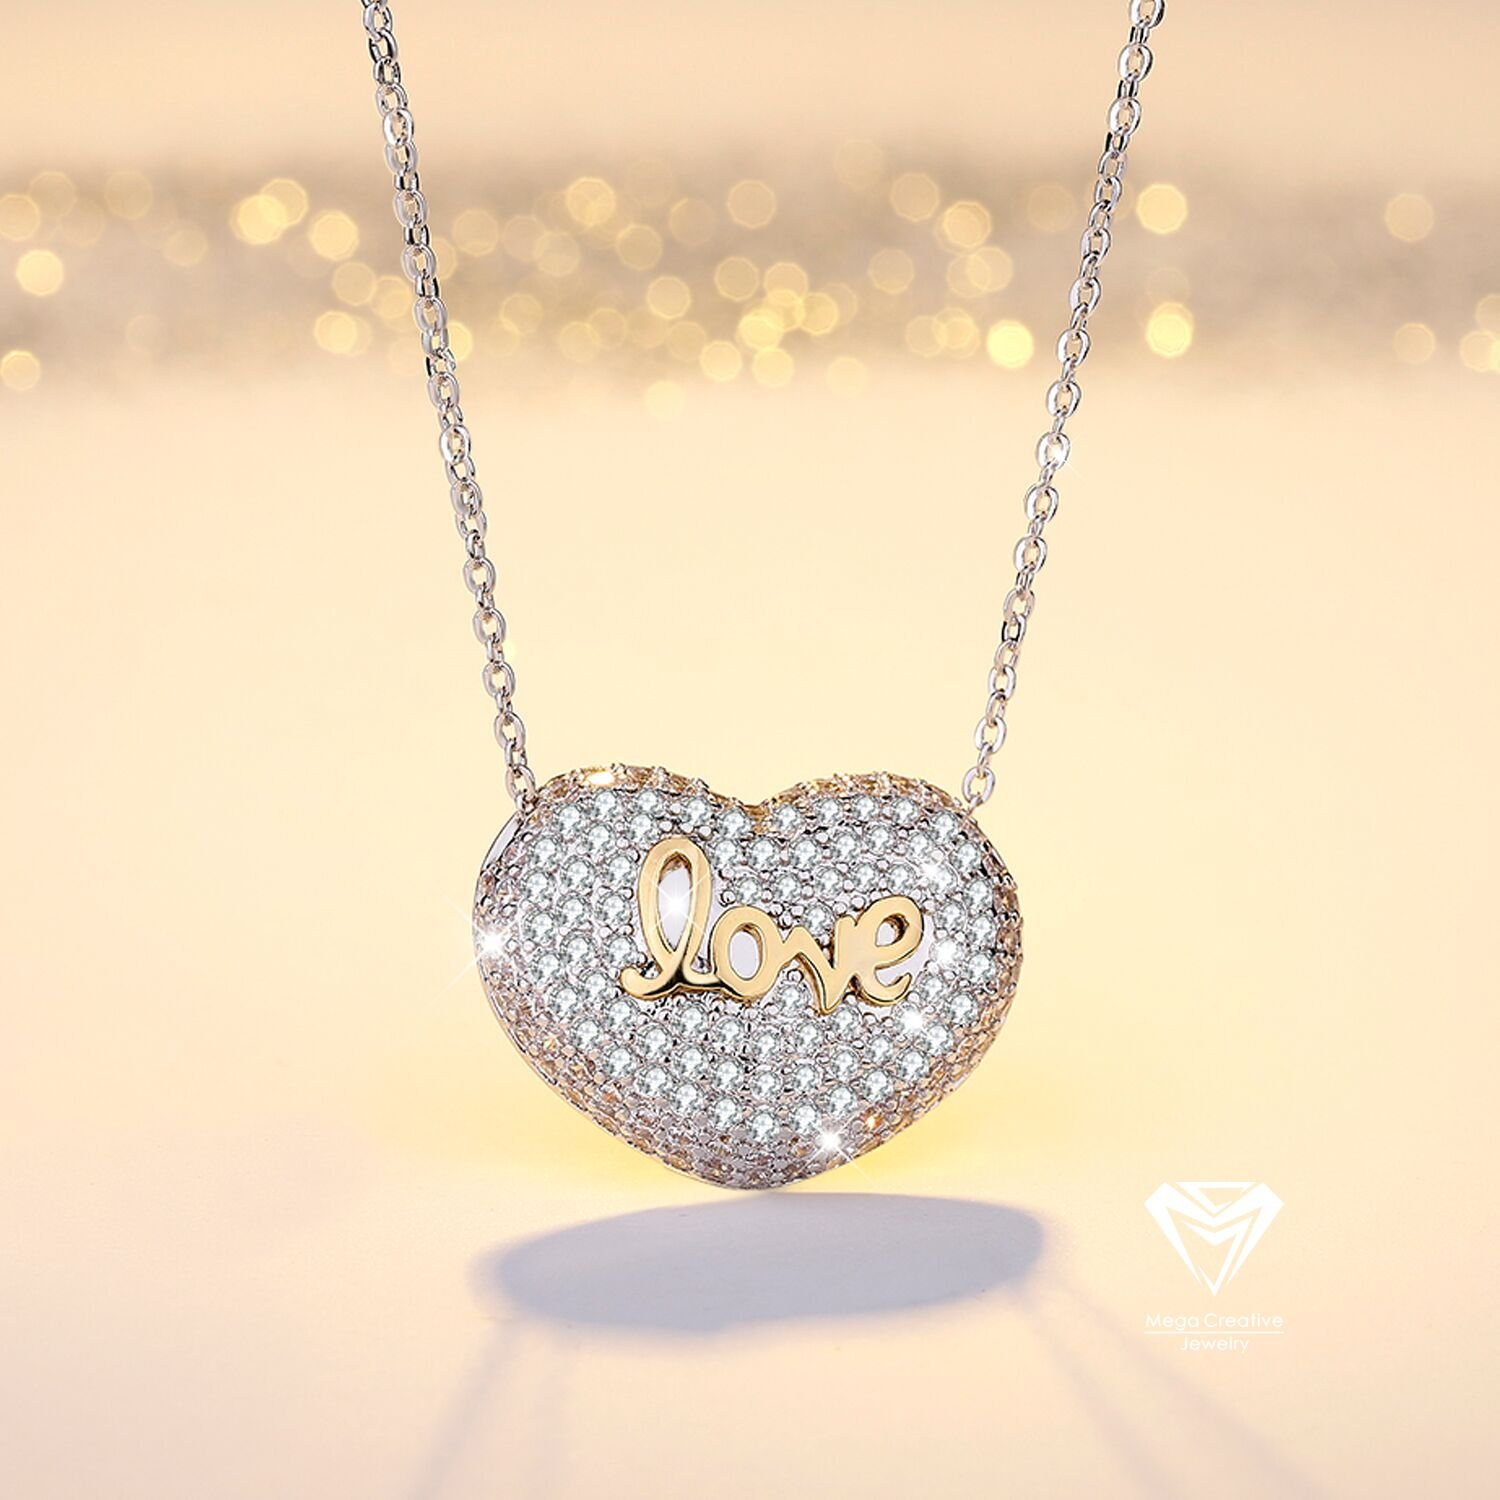 MEGA CREATIVE JEWELRY Heart Necklace Inlaid with Love for Girls Made with Swarovski Crystals Gifts